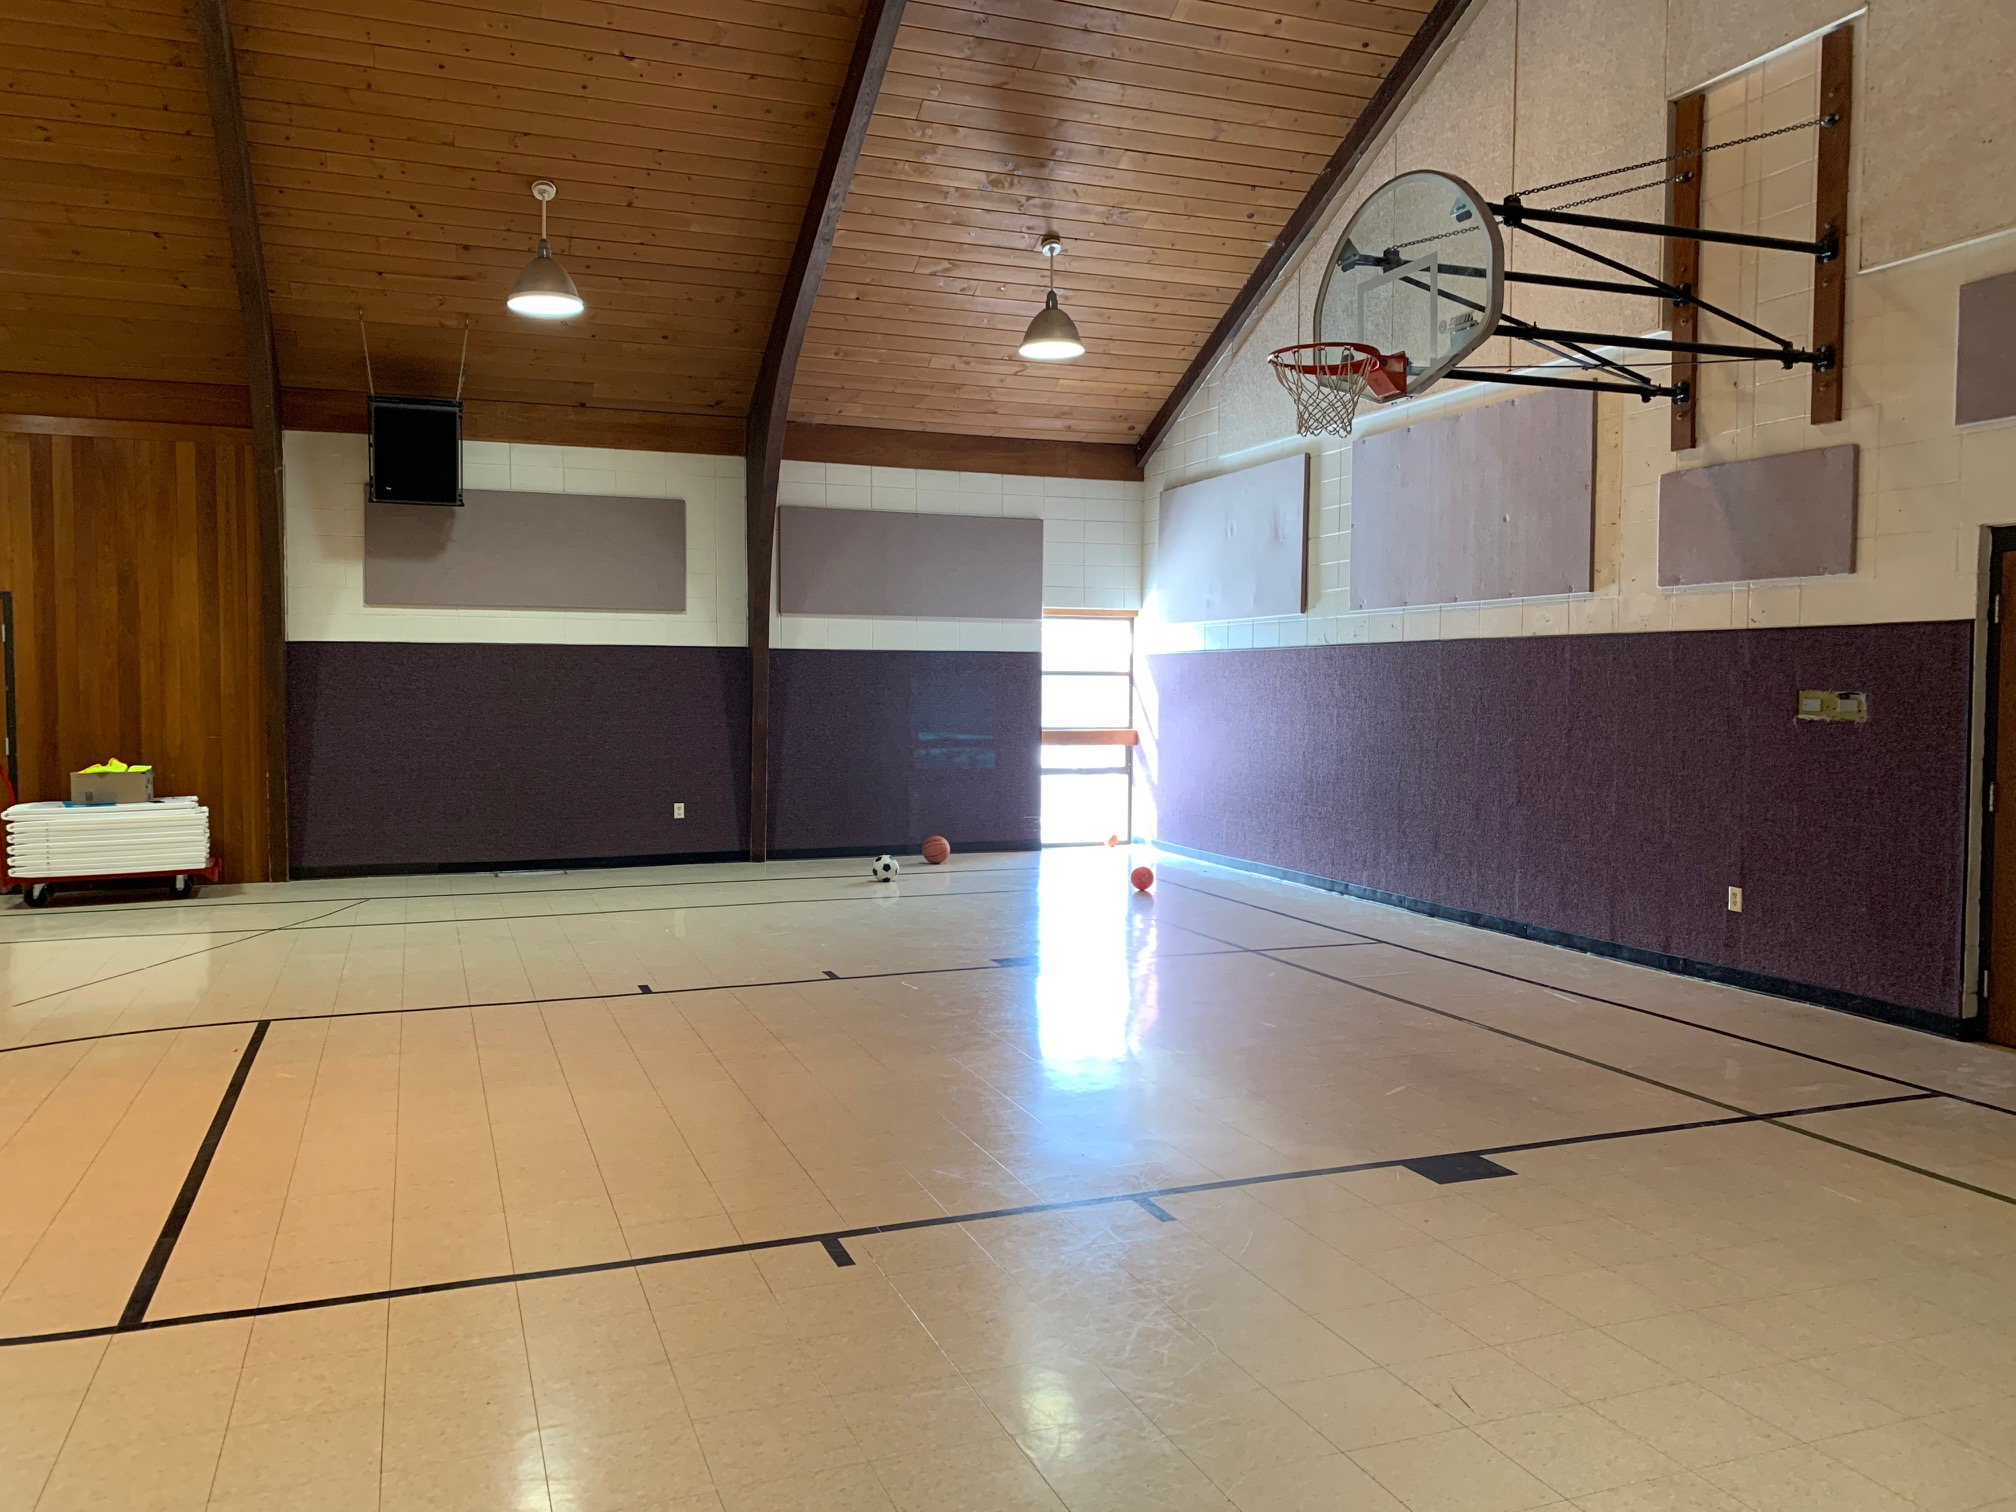 GYM - Great for: Sporting Events, Parties, & Large events.Accommodates up to 300 peopleCost: $40 per hour